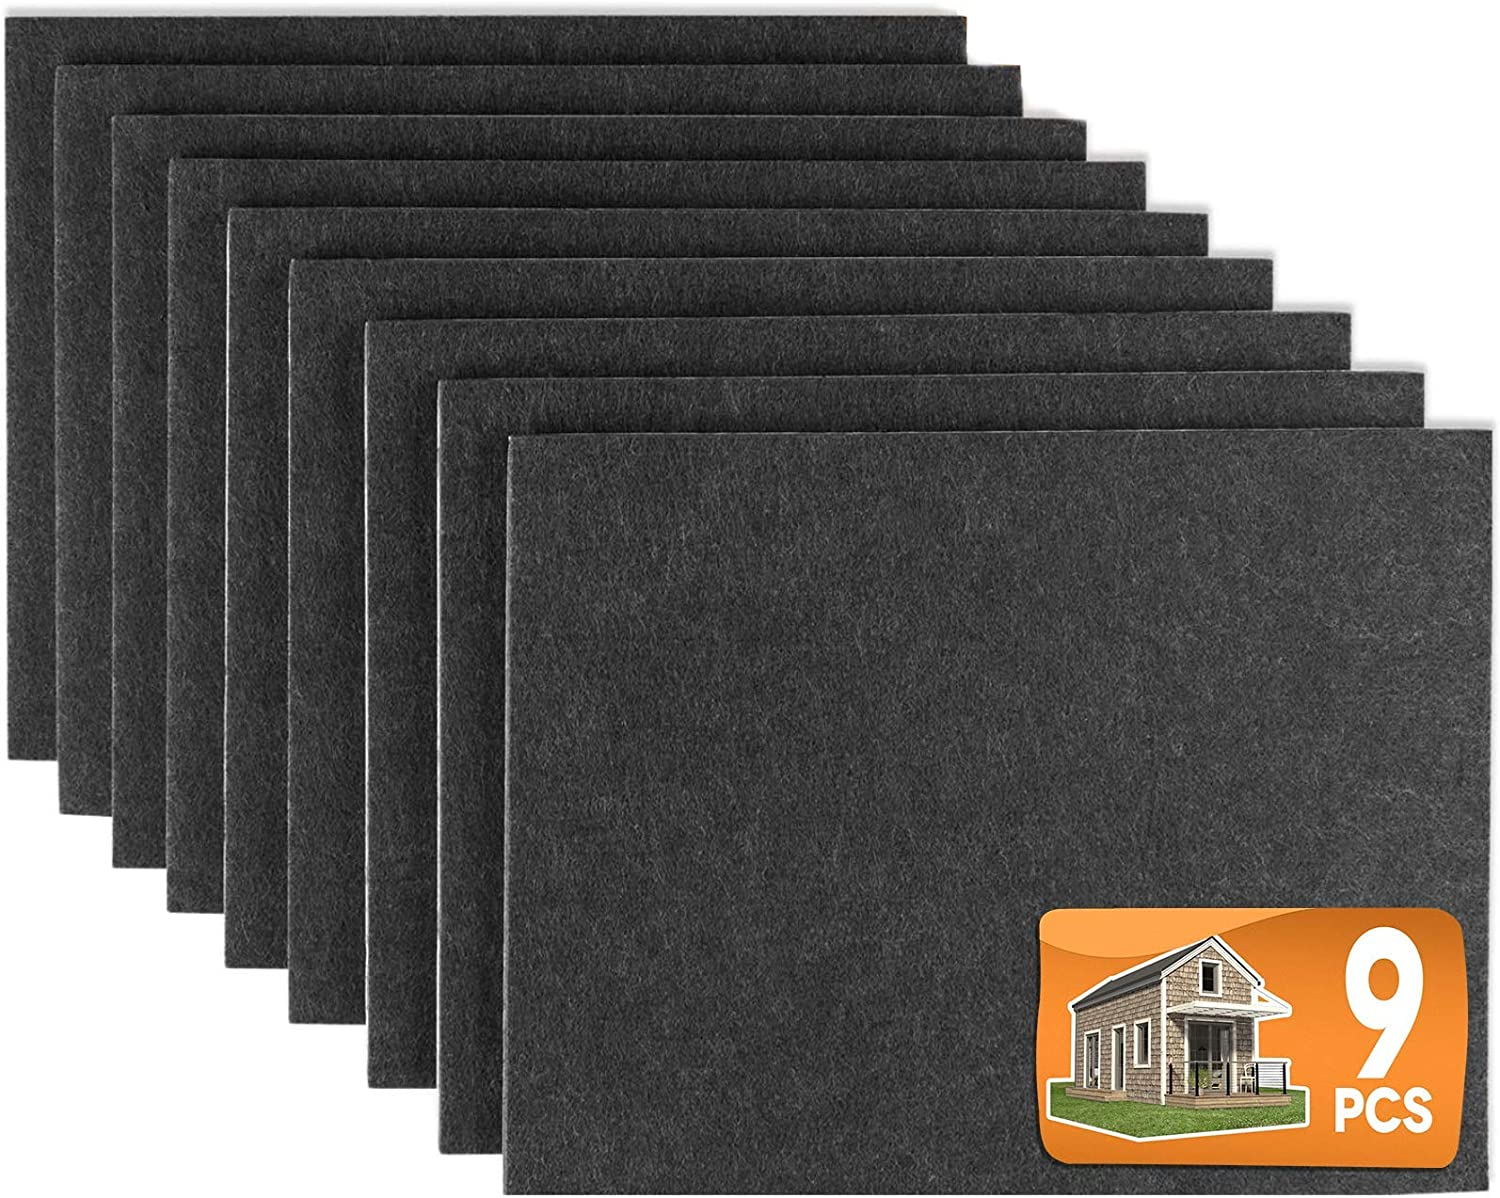 "Furniture Pads 9 Pieces 8"" x 6"" x 1/5"" Furniture Felt Pads Self Adhesive, Cuttable Felt Chair Pads, Anti Scratch Floor Protectors for Furniture Legs Hardwood Floor, Black"